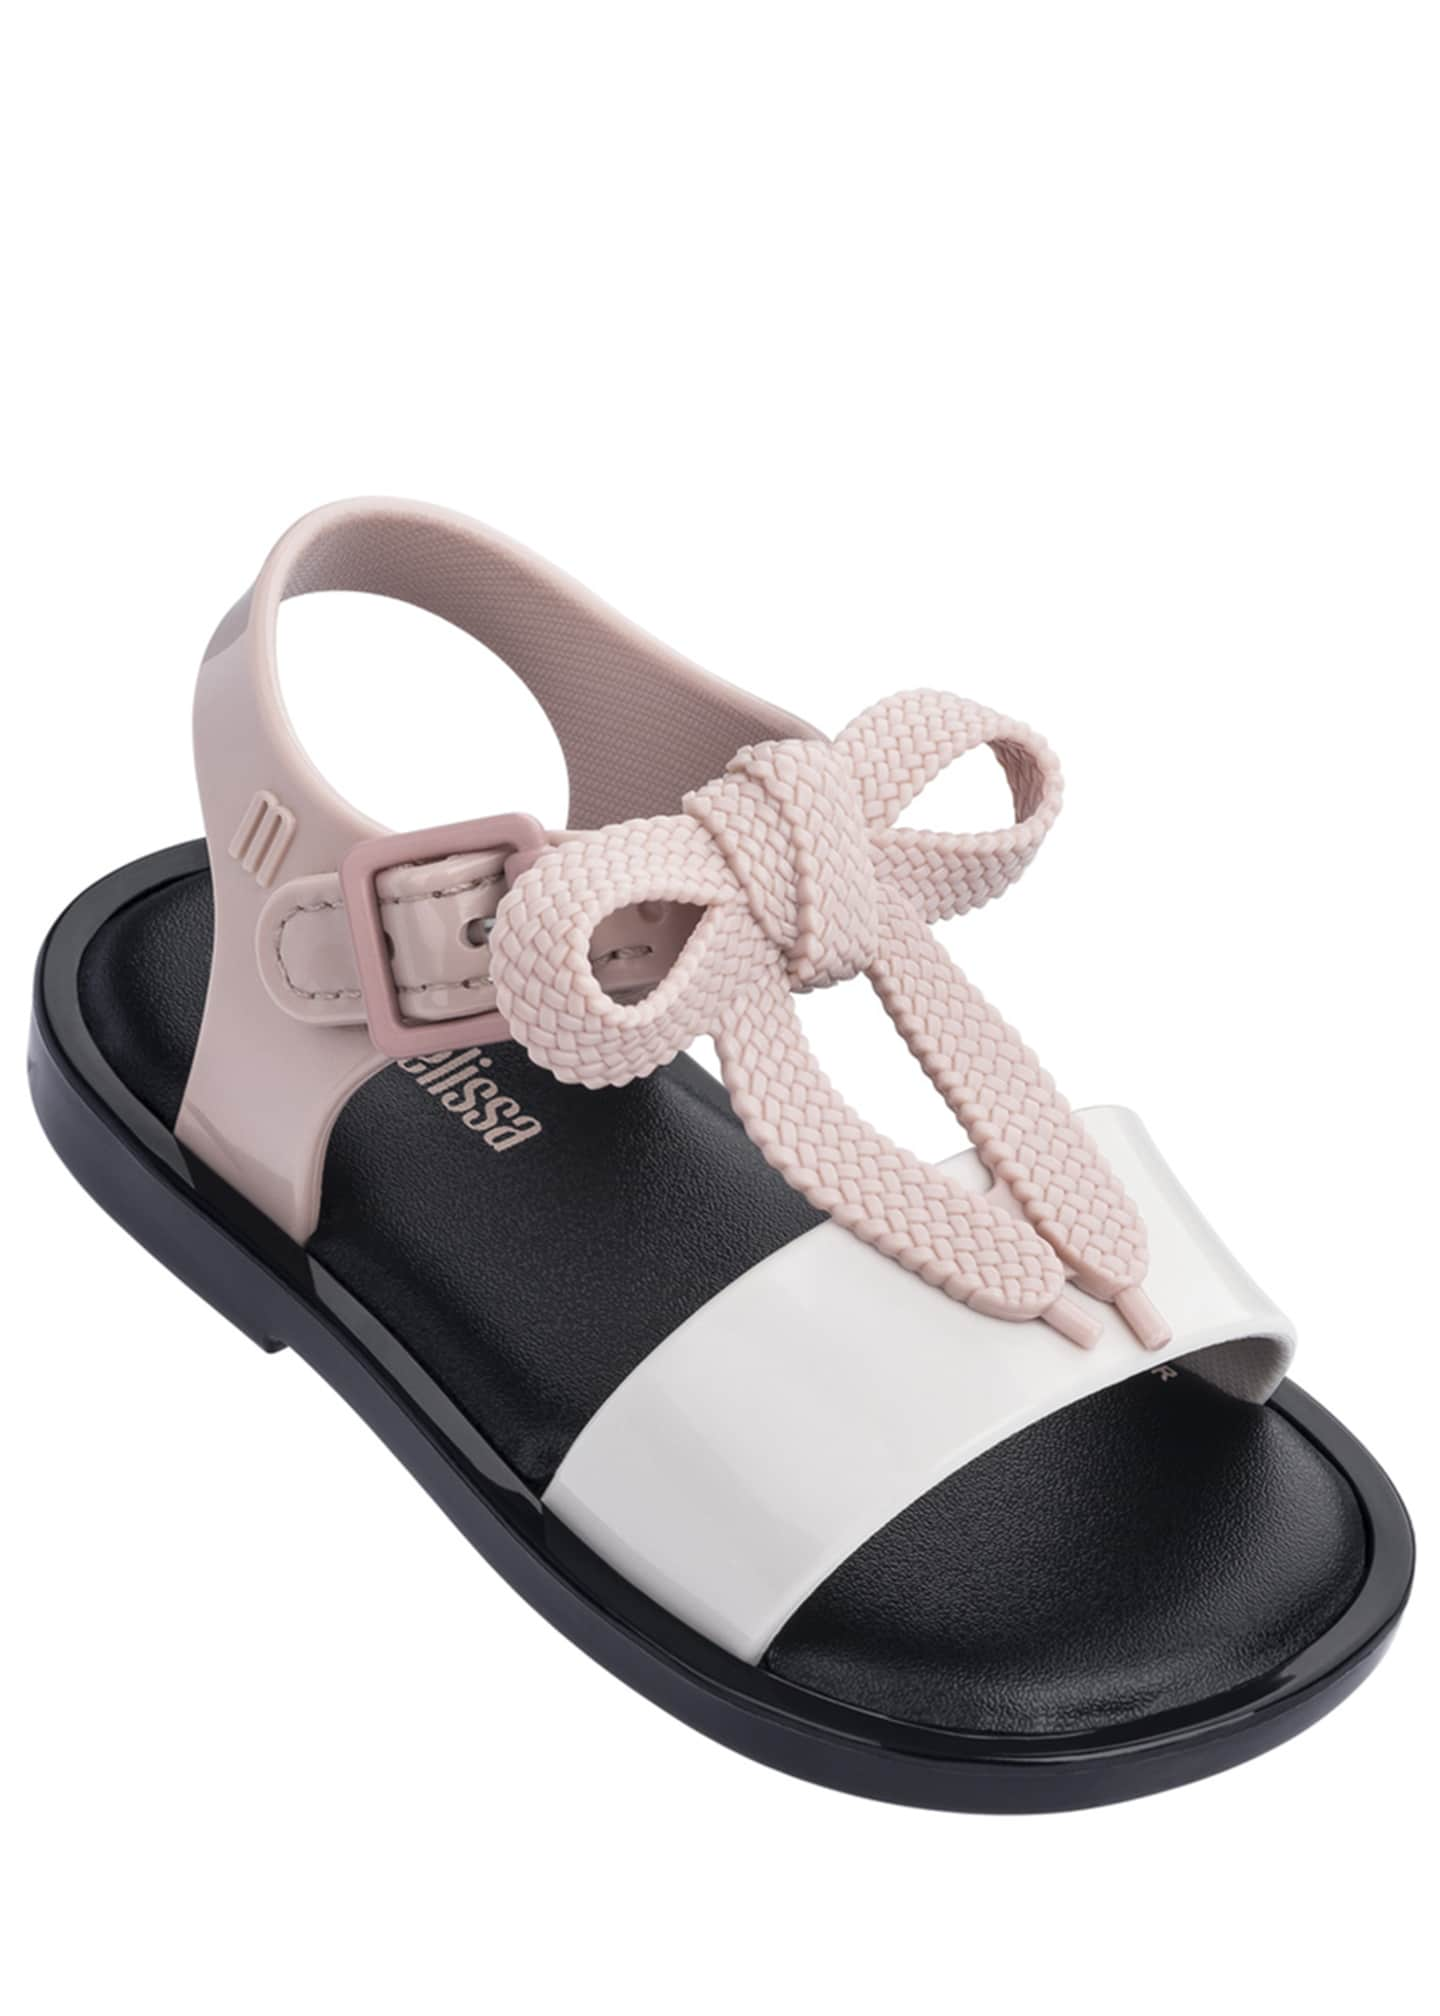 Mini Melissa Mar Shoelace Bow T-Strap Sandal, Baby/Toddler/Kids